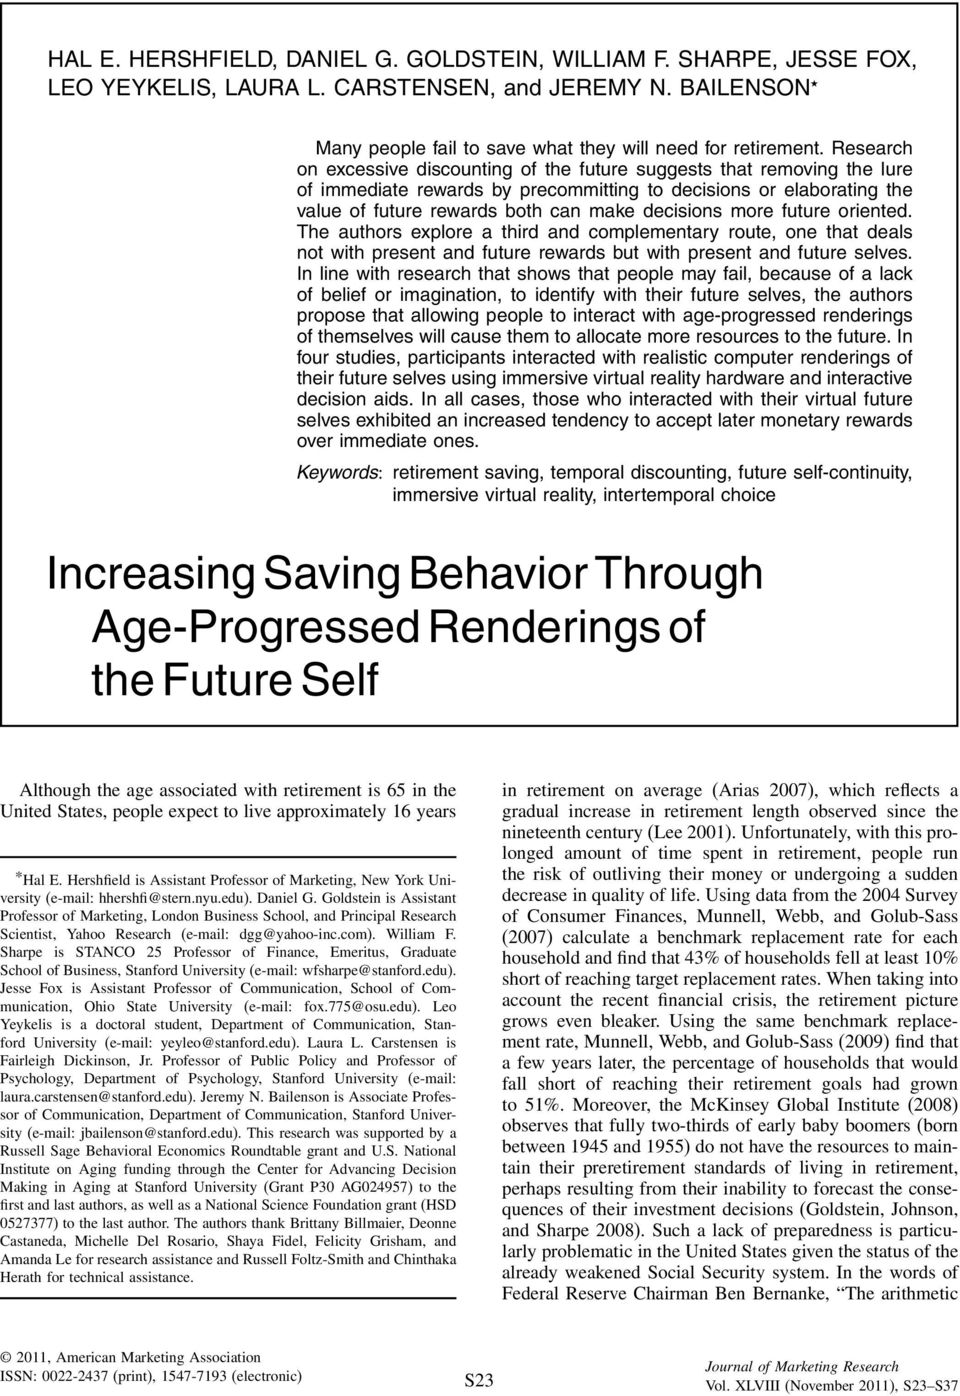 more future oriented. The authors explore a third and complementary route, one that deals not with present and future rewards but with present and future selves.